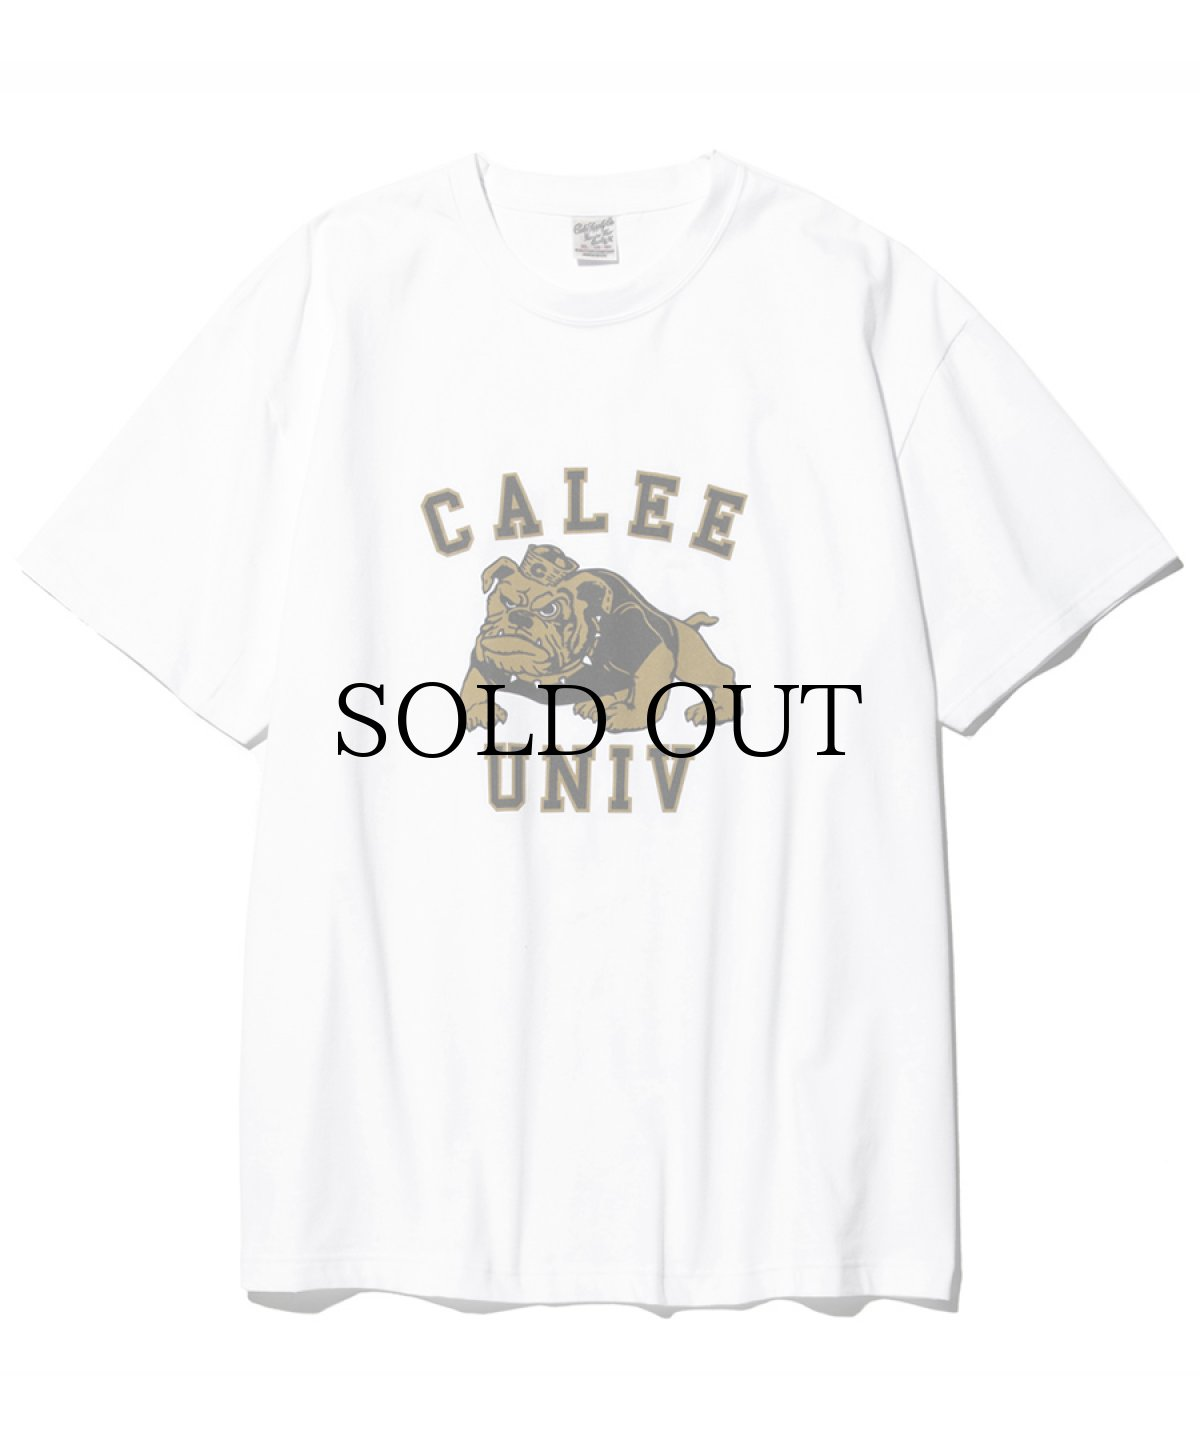 画像1: CALEE / Bull dog t-shirt -WHITE- (1)